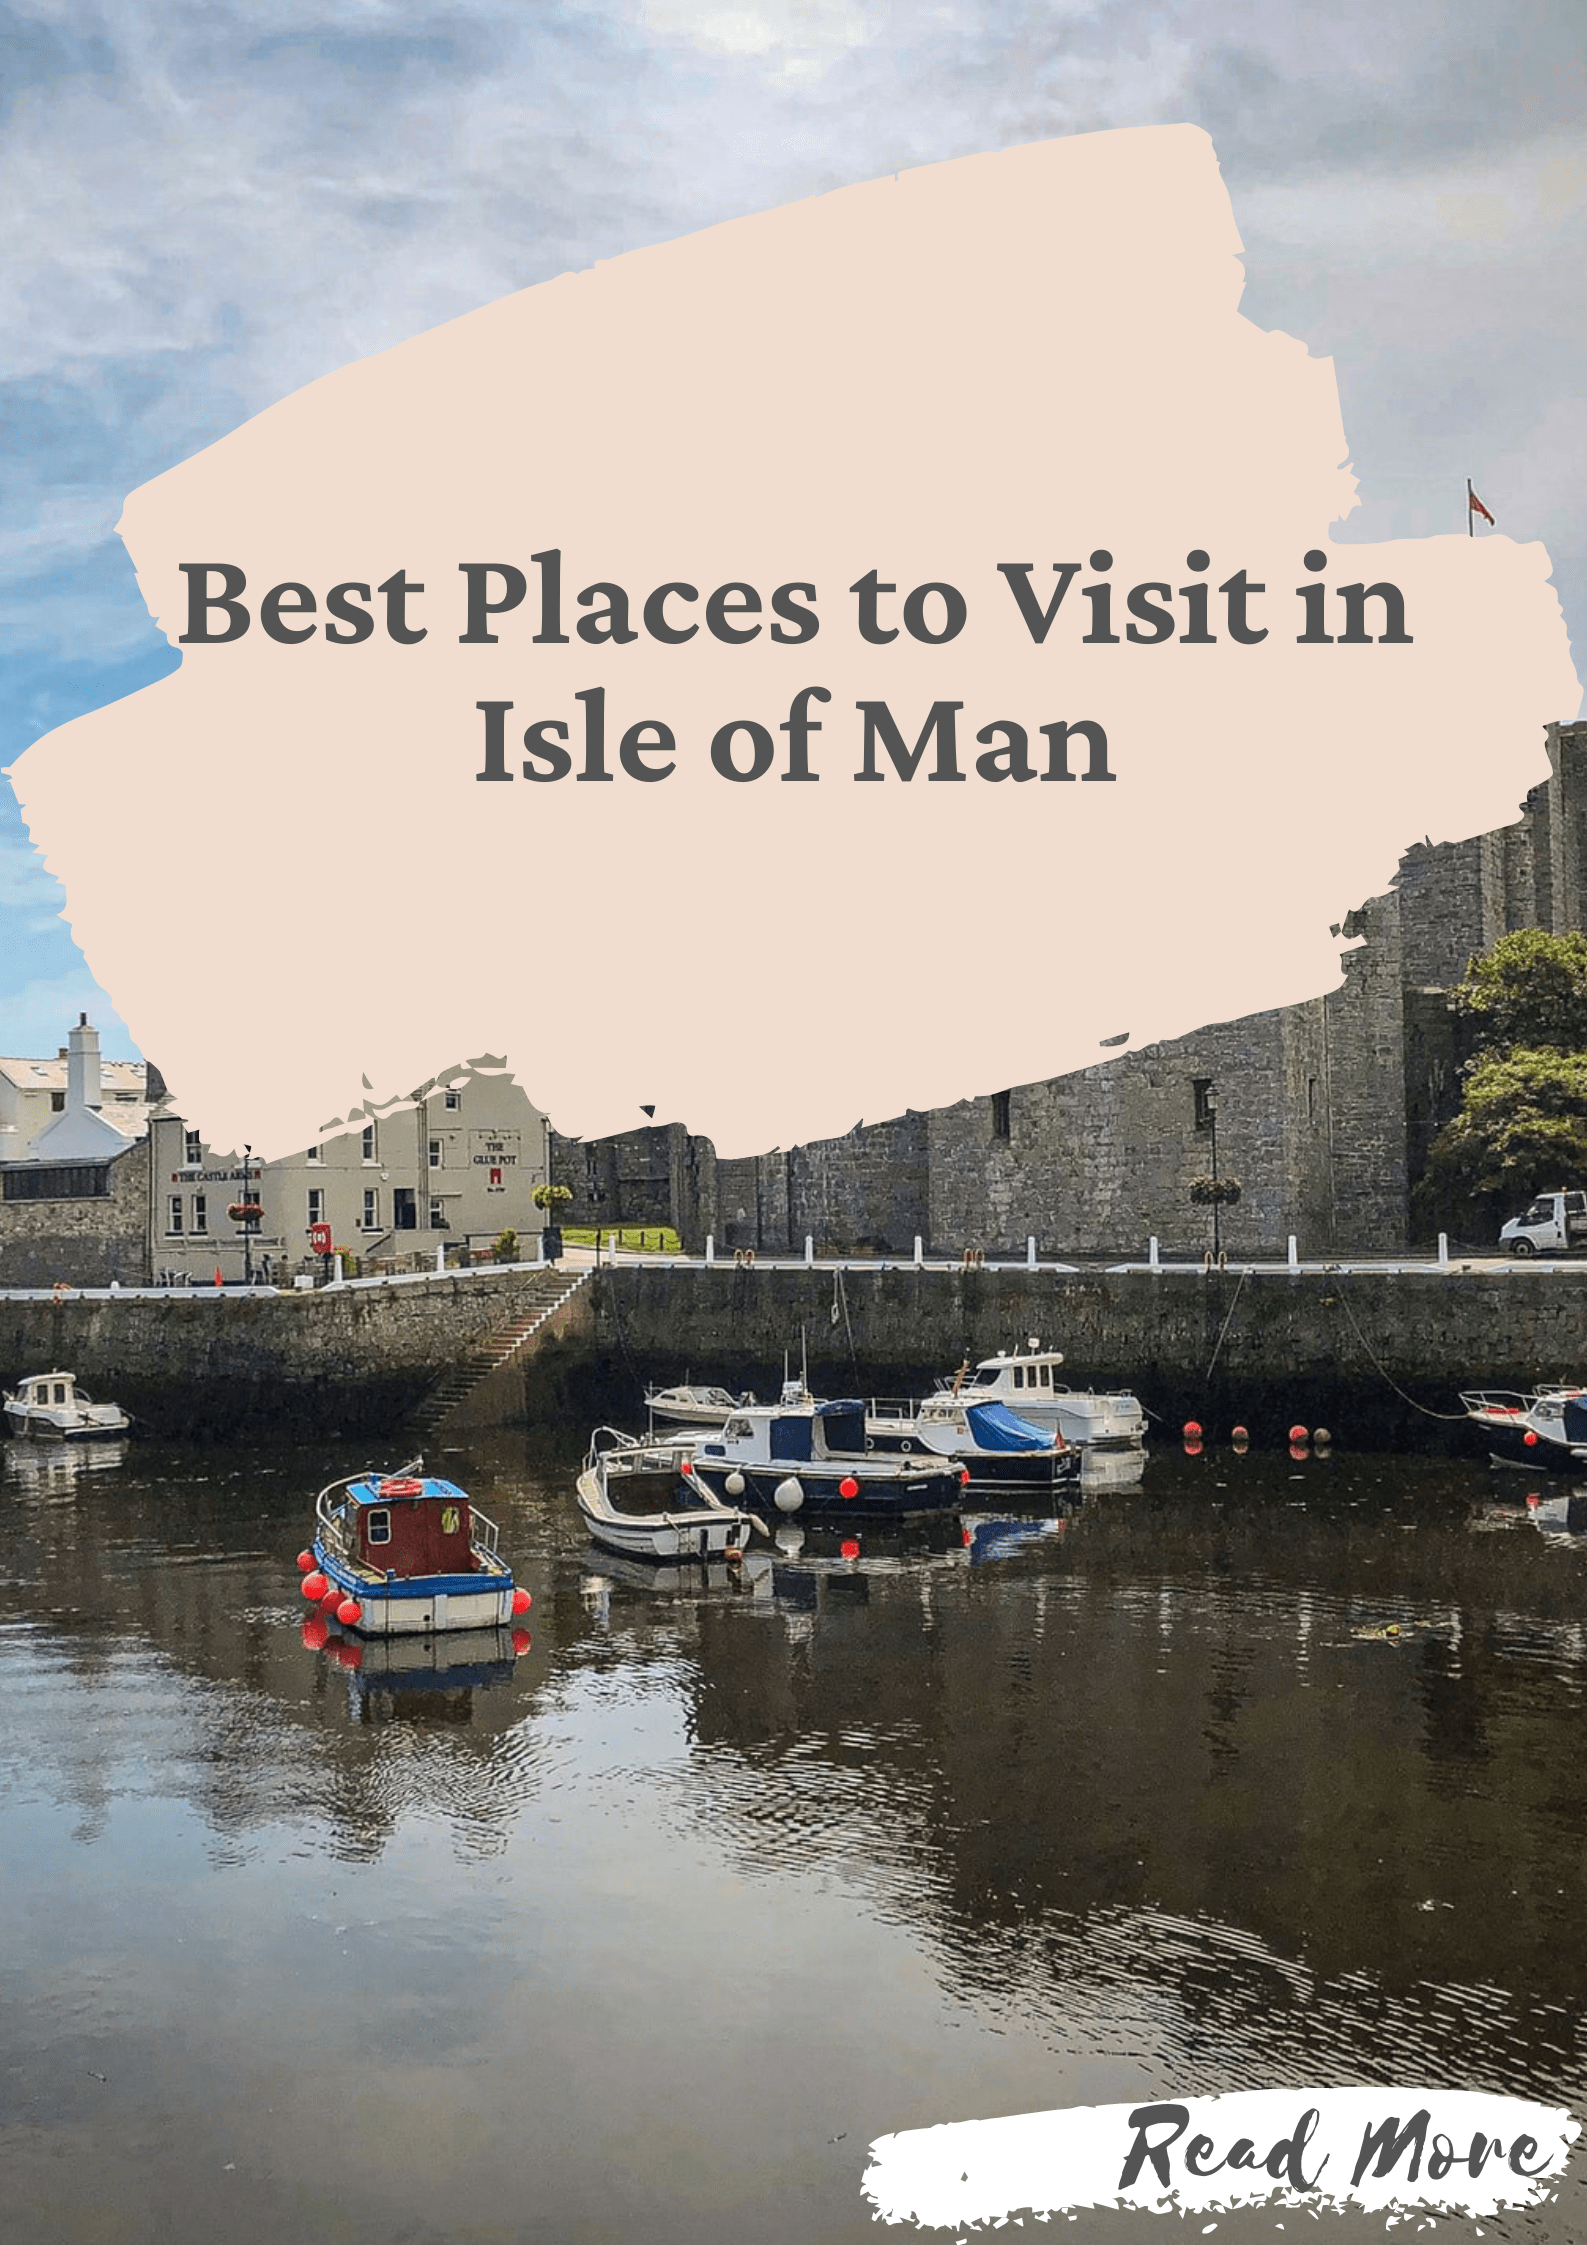 Best Places to Visit in Isle of Man